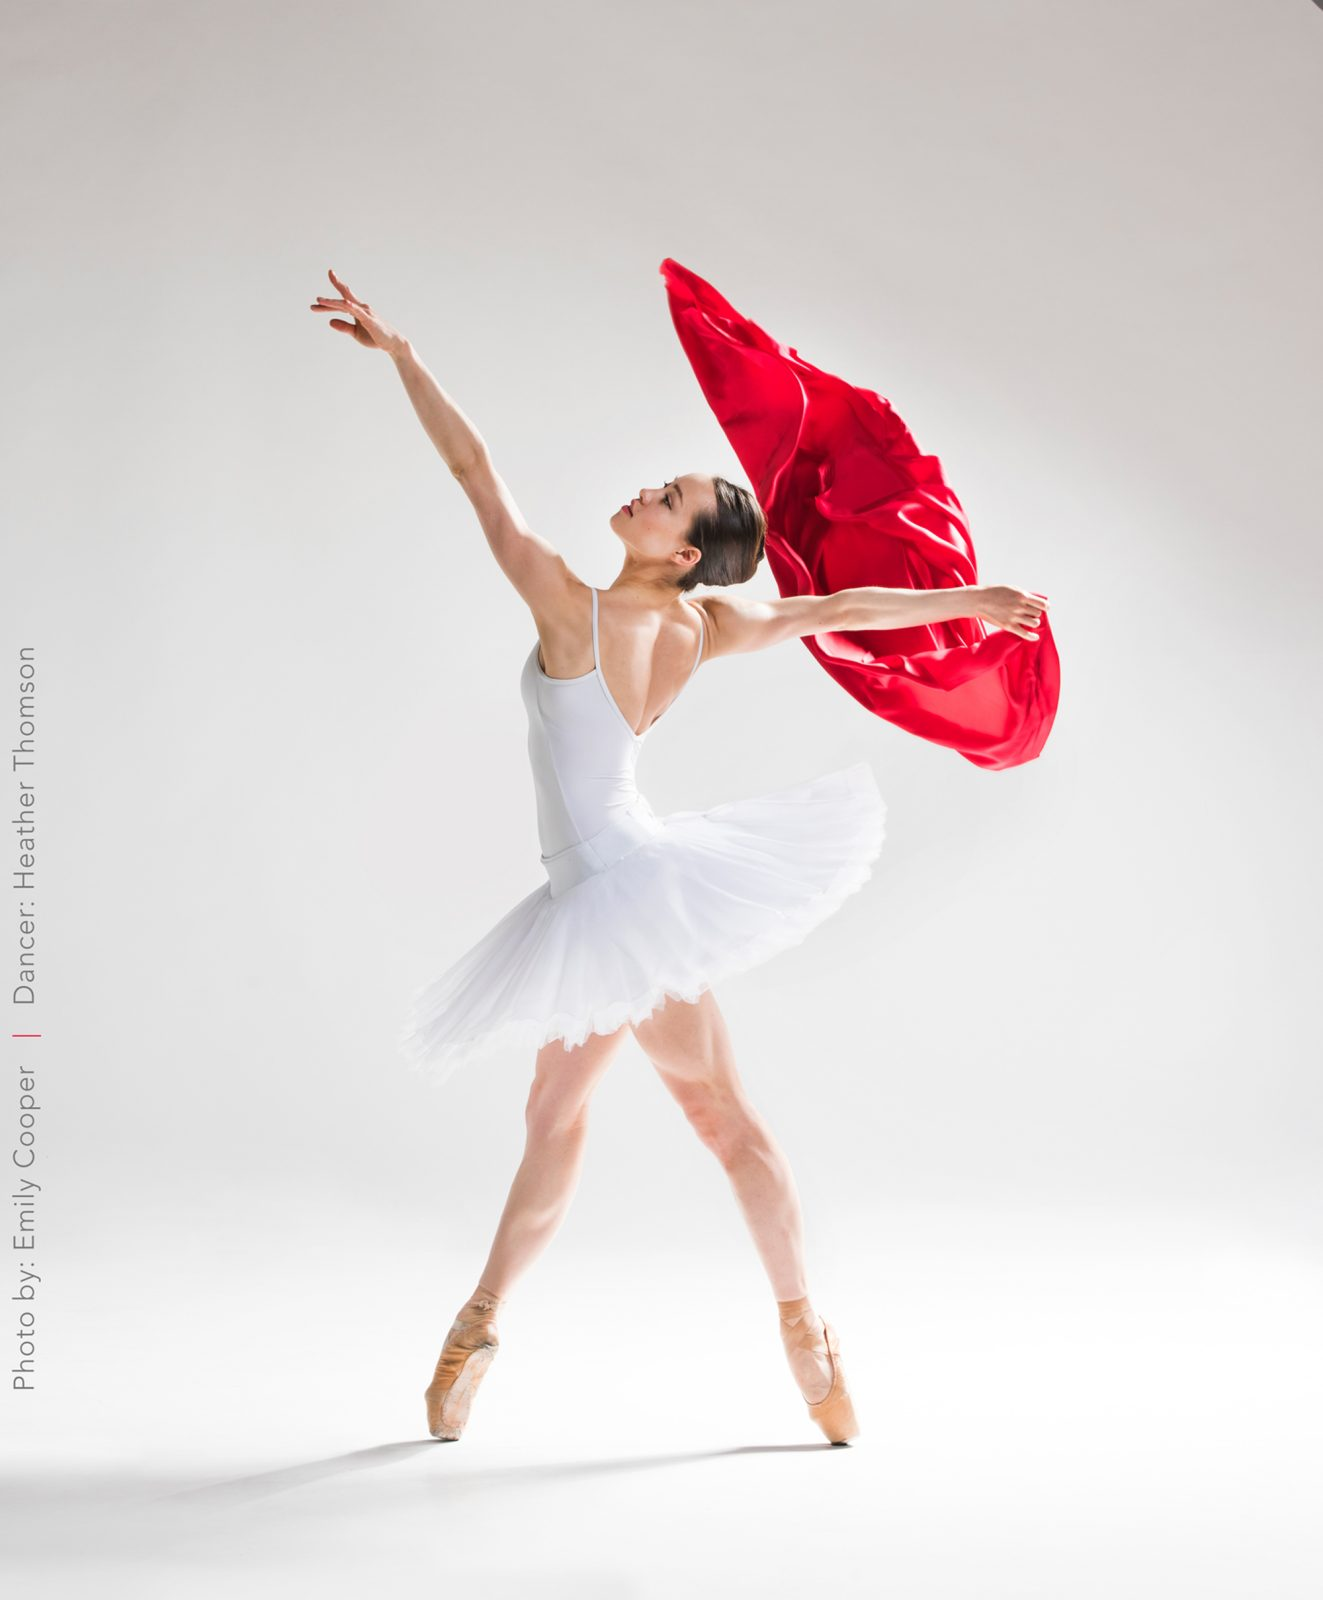 dancer-heather-thomson_photo-emily-cooper_rs-1